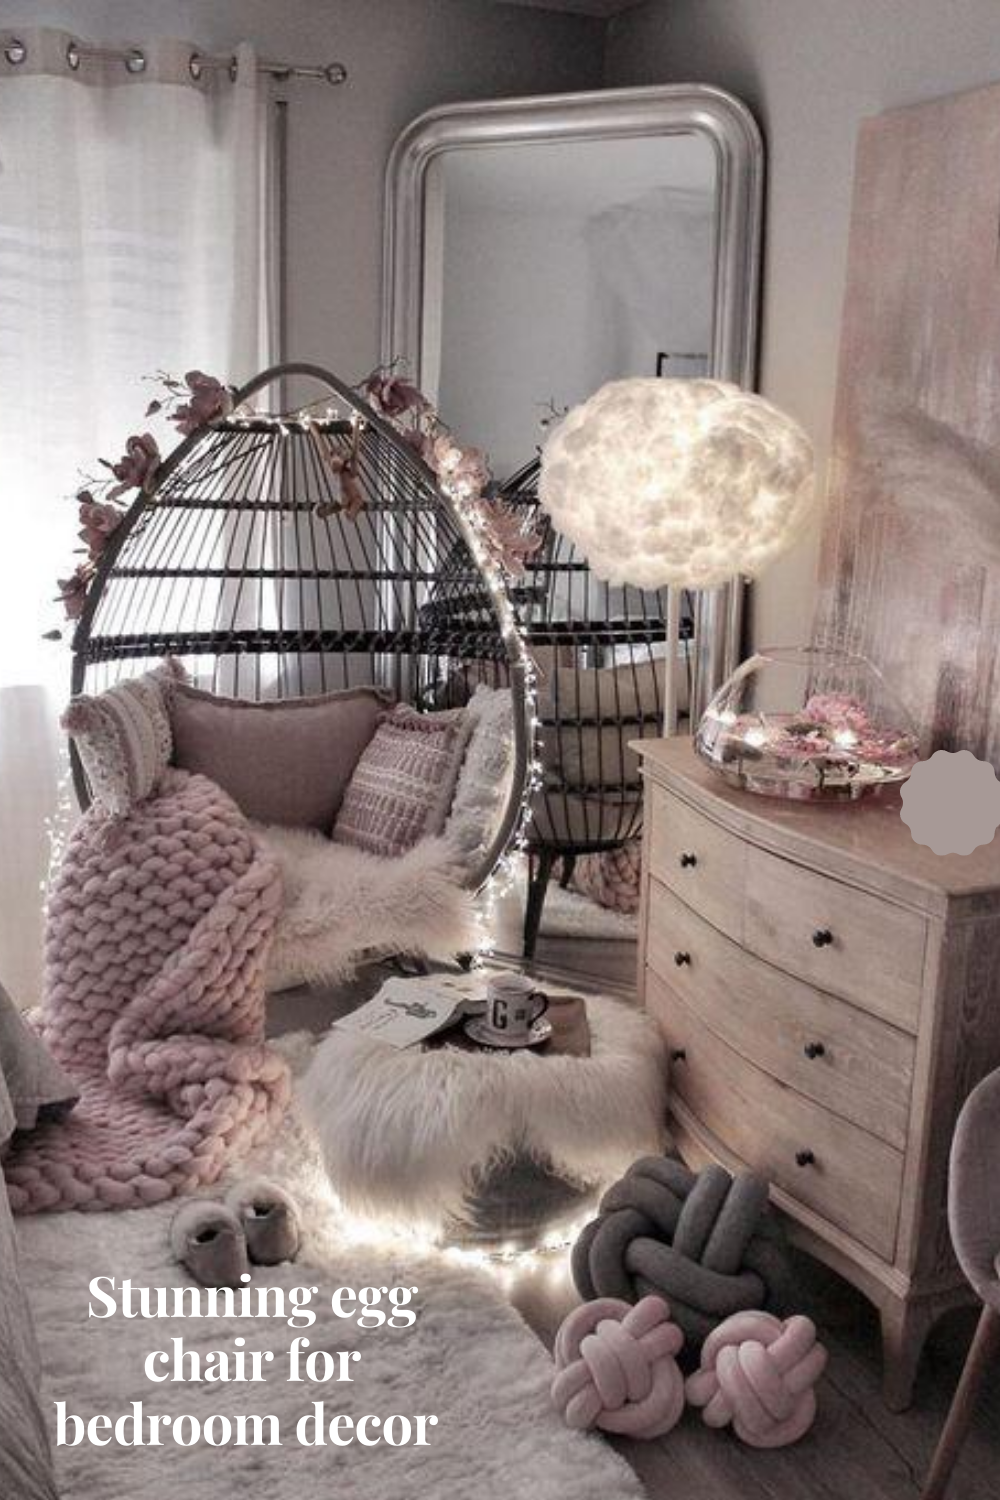 Photo of Stunning egg chair for bedroom decor